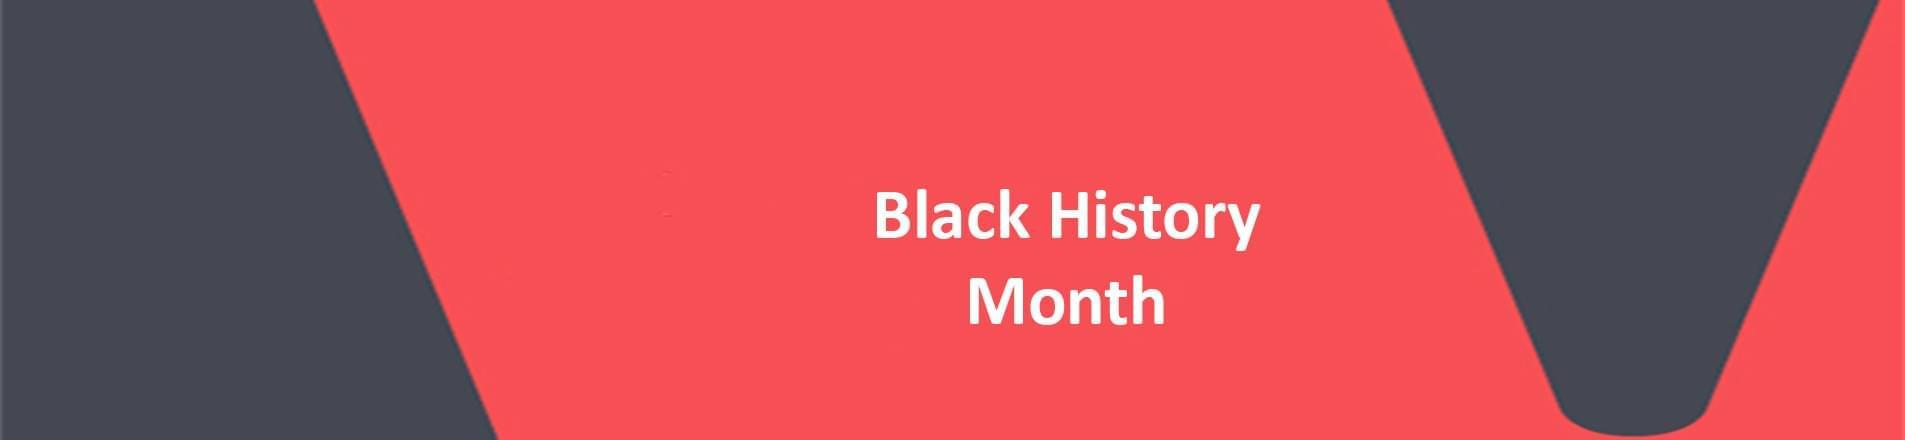 The words Black History Month on a red VERCIDA branded background